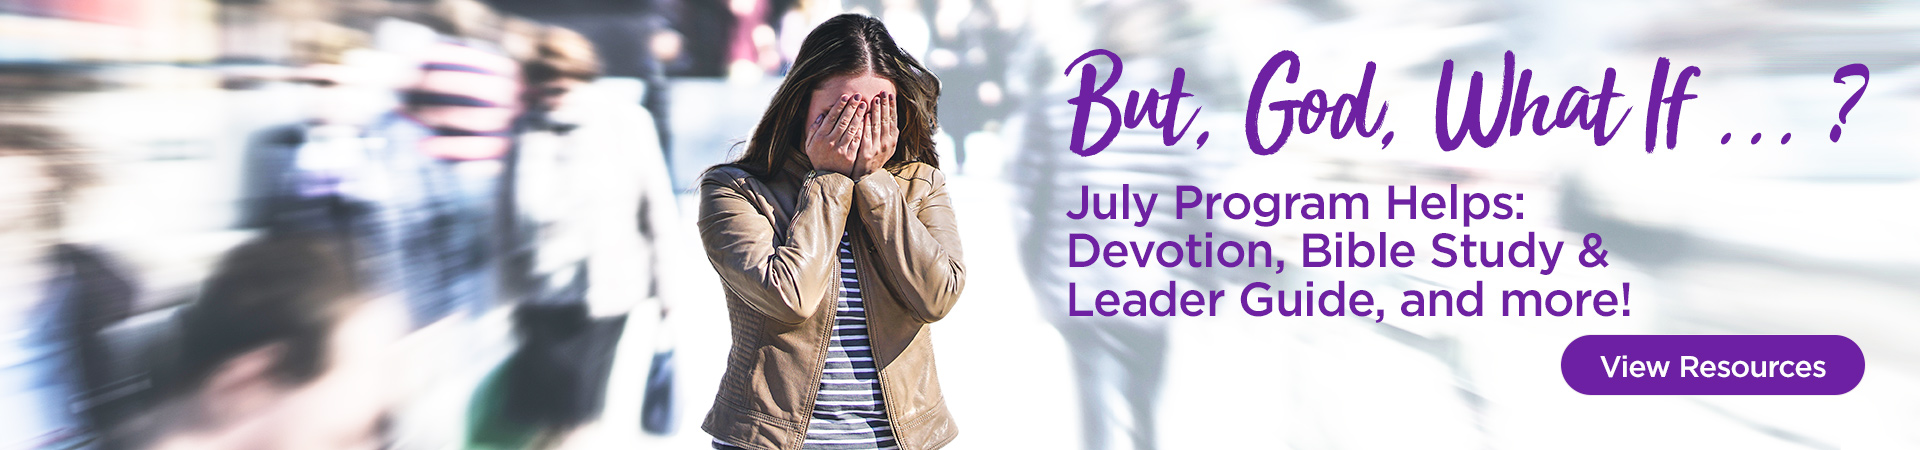 BUT, GOD, WHAT IF … ? is the theme for the July featured program helps.